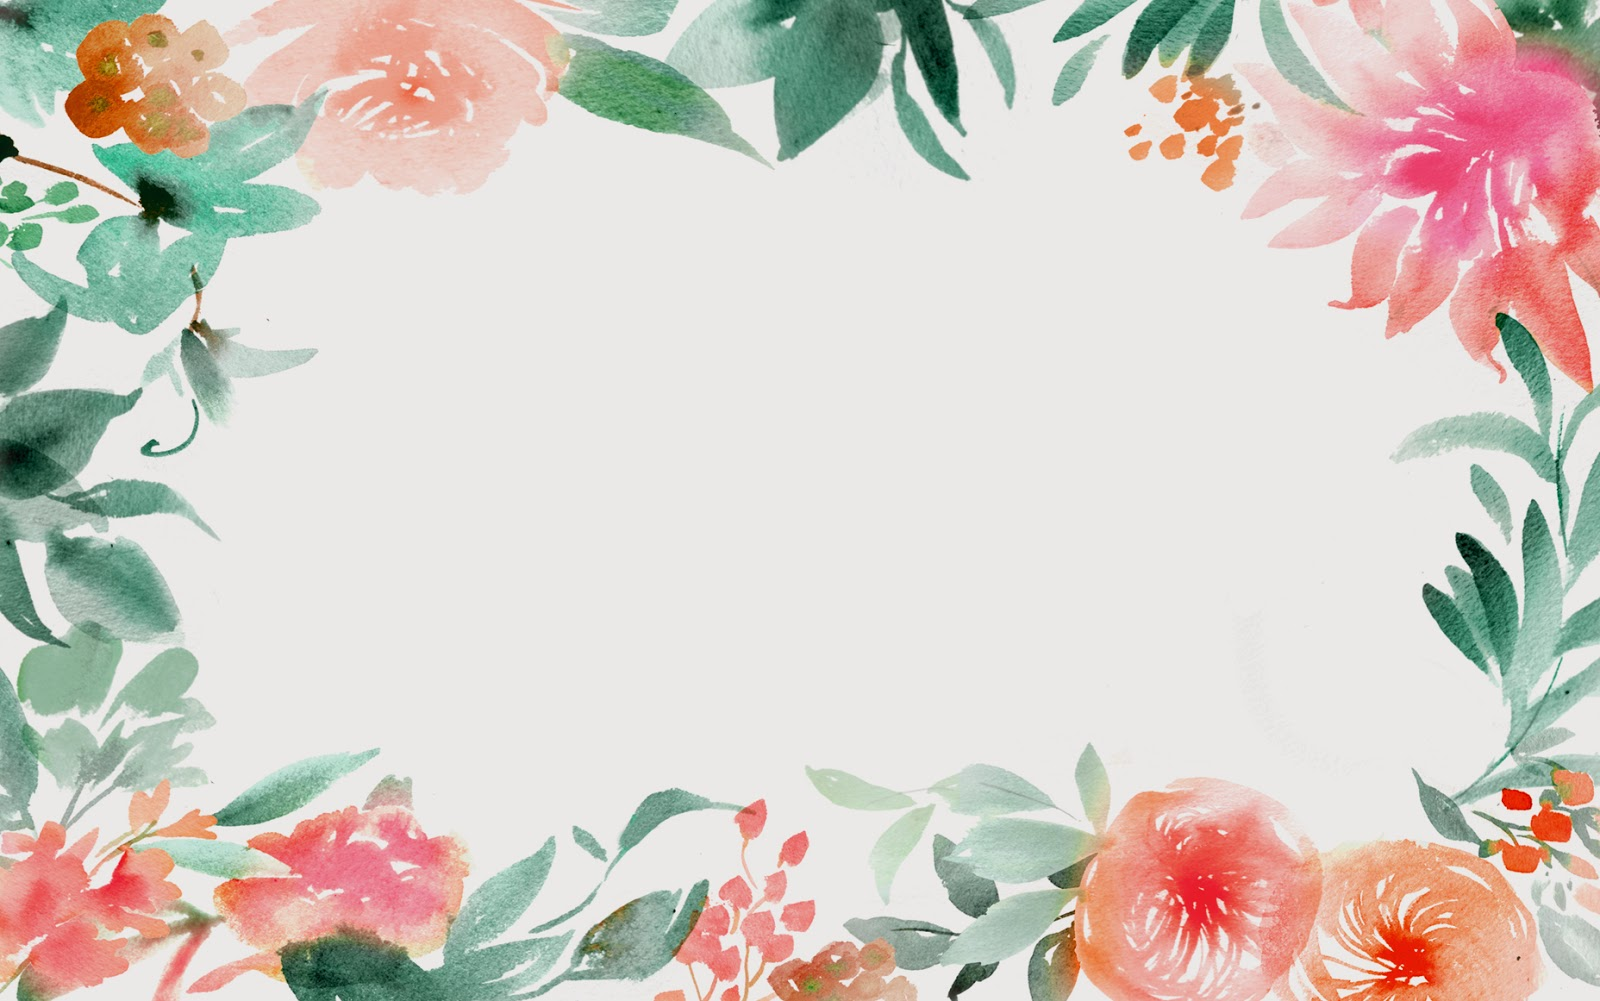 31 Watercolor Floral Wallpaper Border On Wallpapersafari